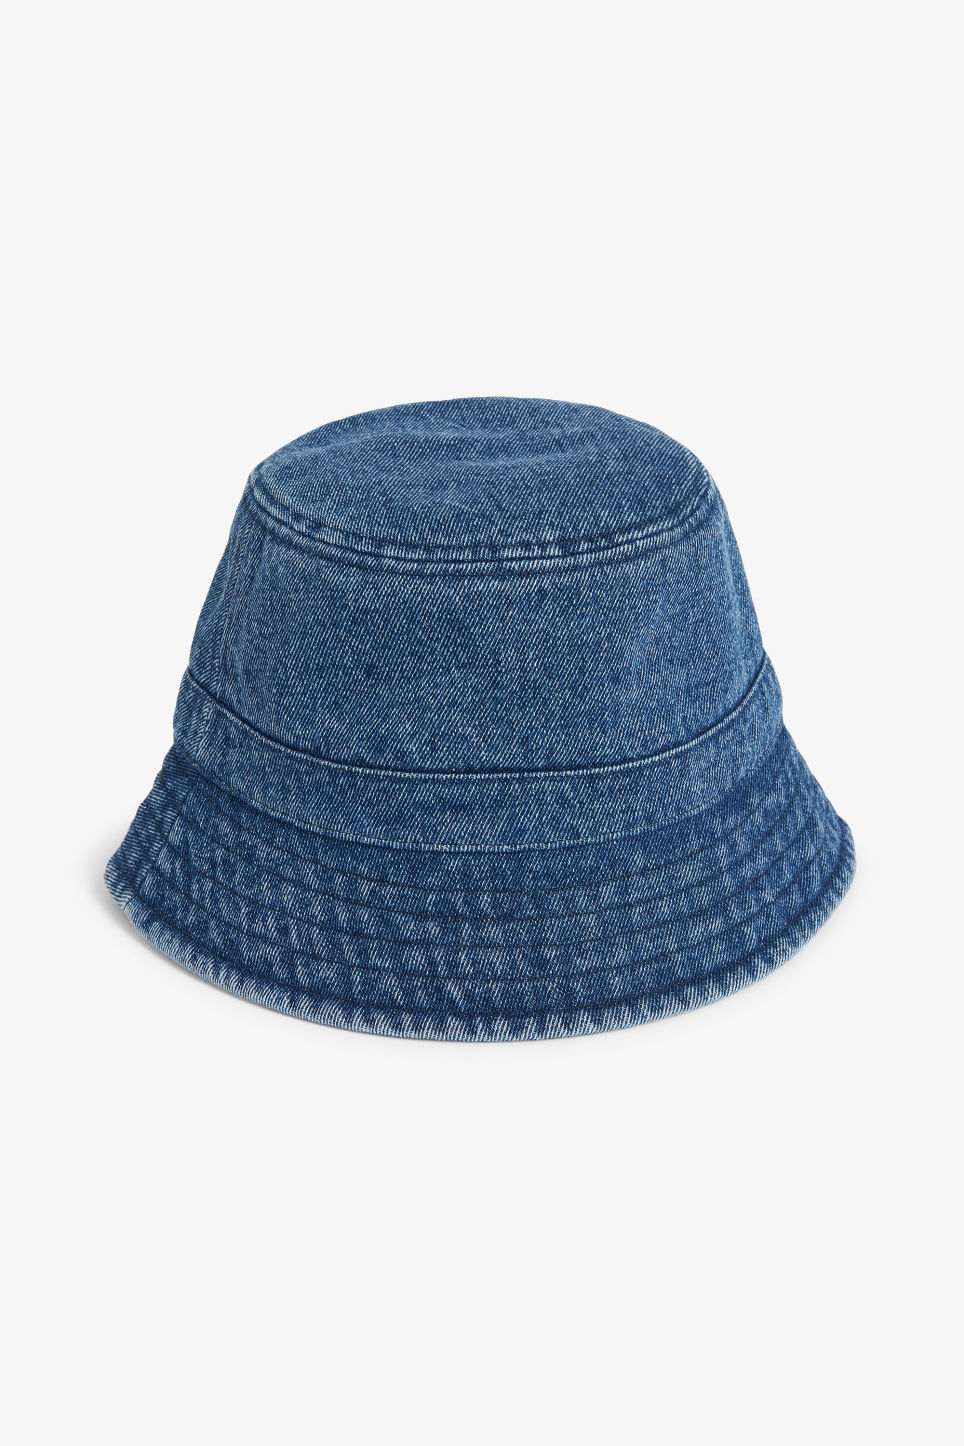 2a29e80667 Denim bucket hat - Mid blue - Hats